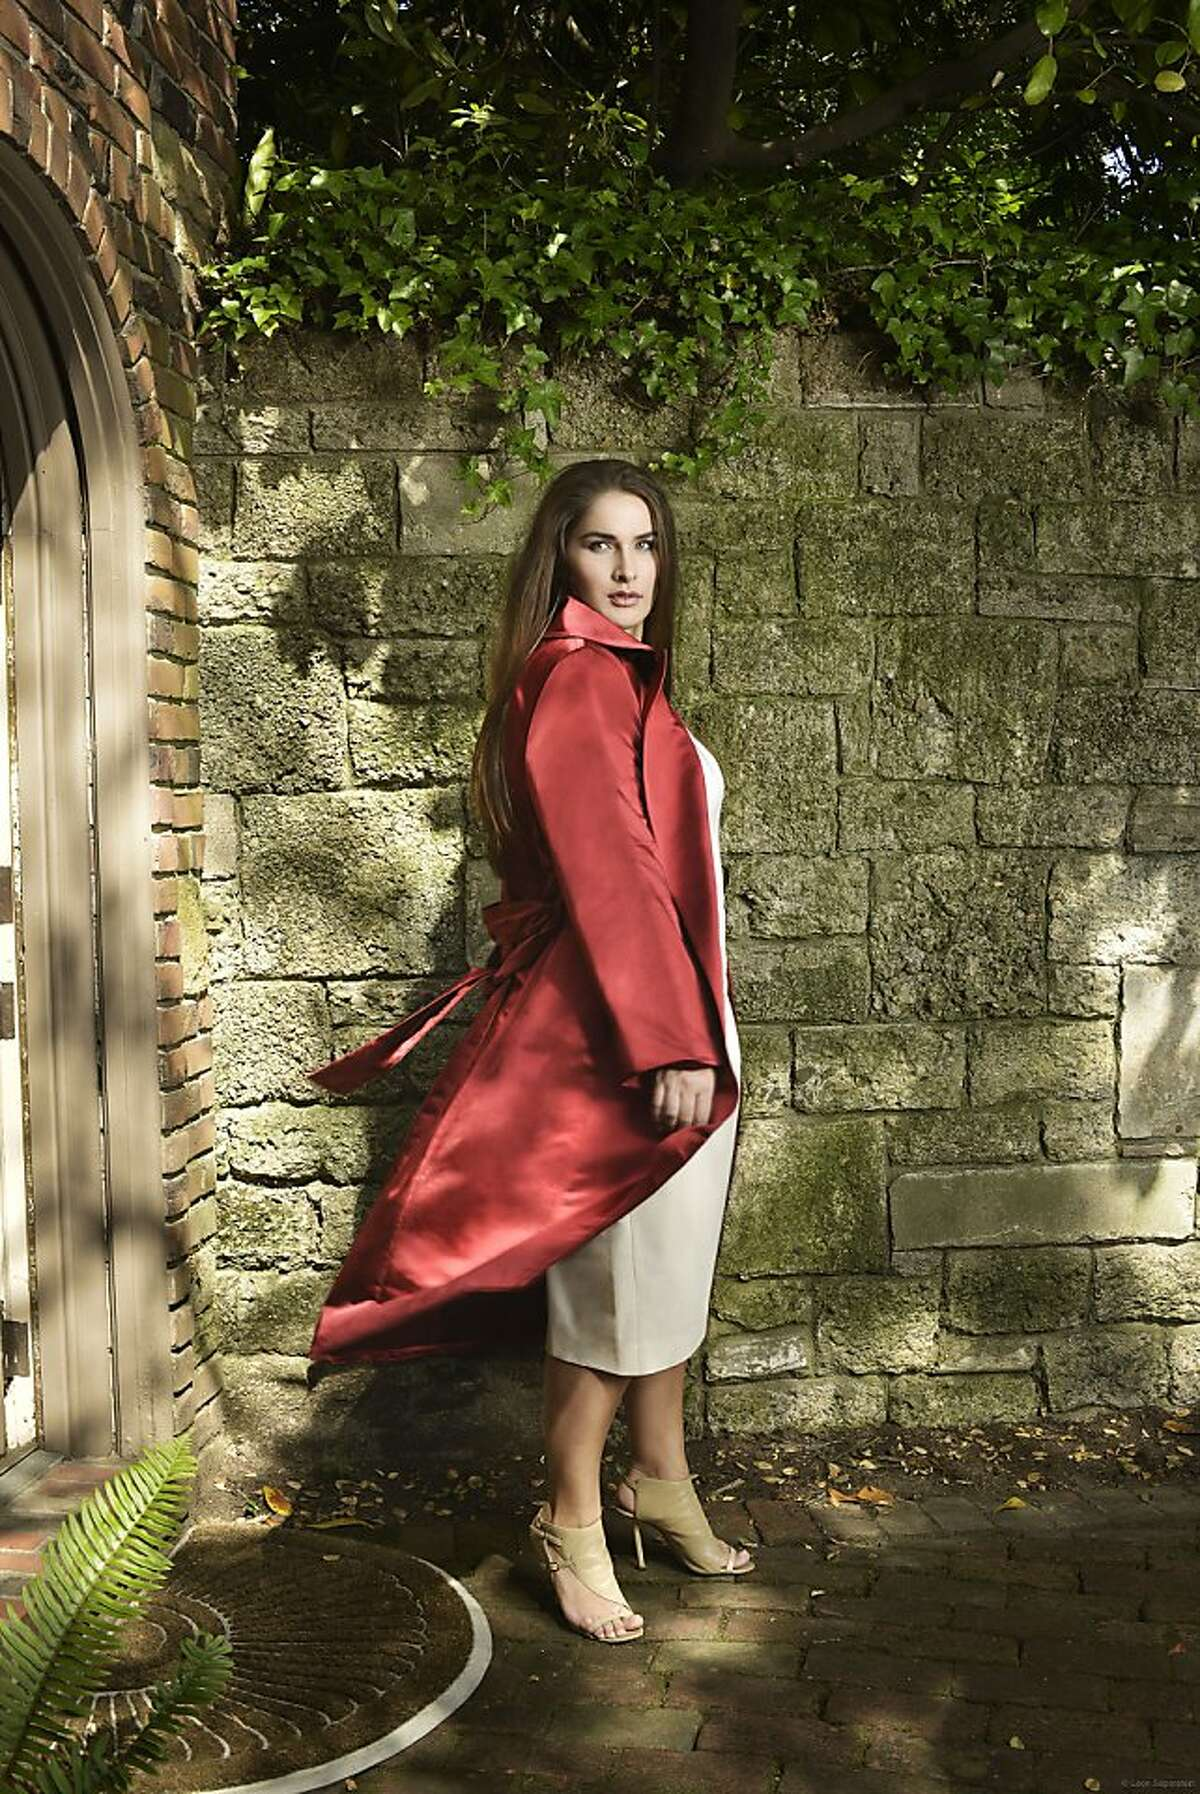 Gabriela Rossetti is a new high-end plus-size fashion line based in San Francisco. Pictured: Catherine coat in claret red over Marion skirt in ivory with the Gabriella Rossetti perfect tee.